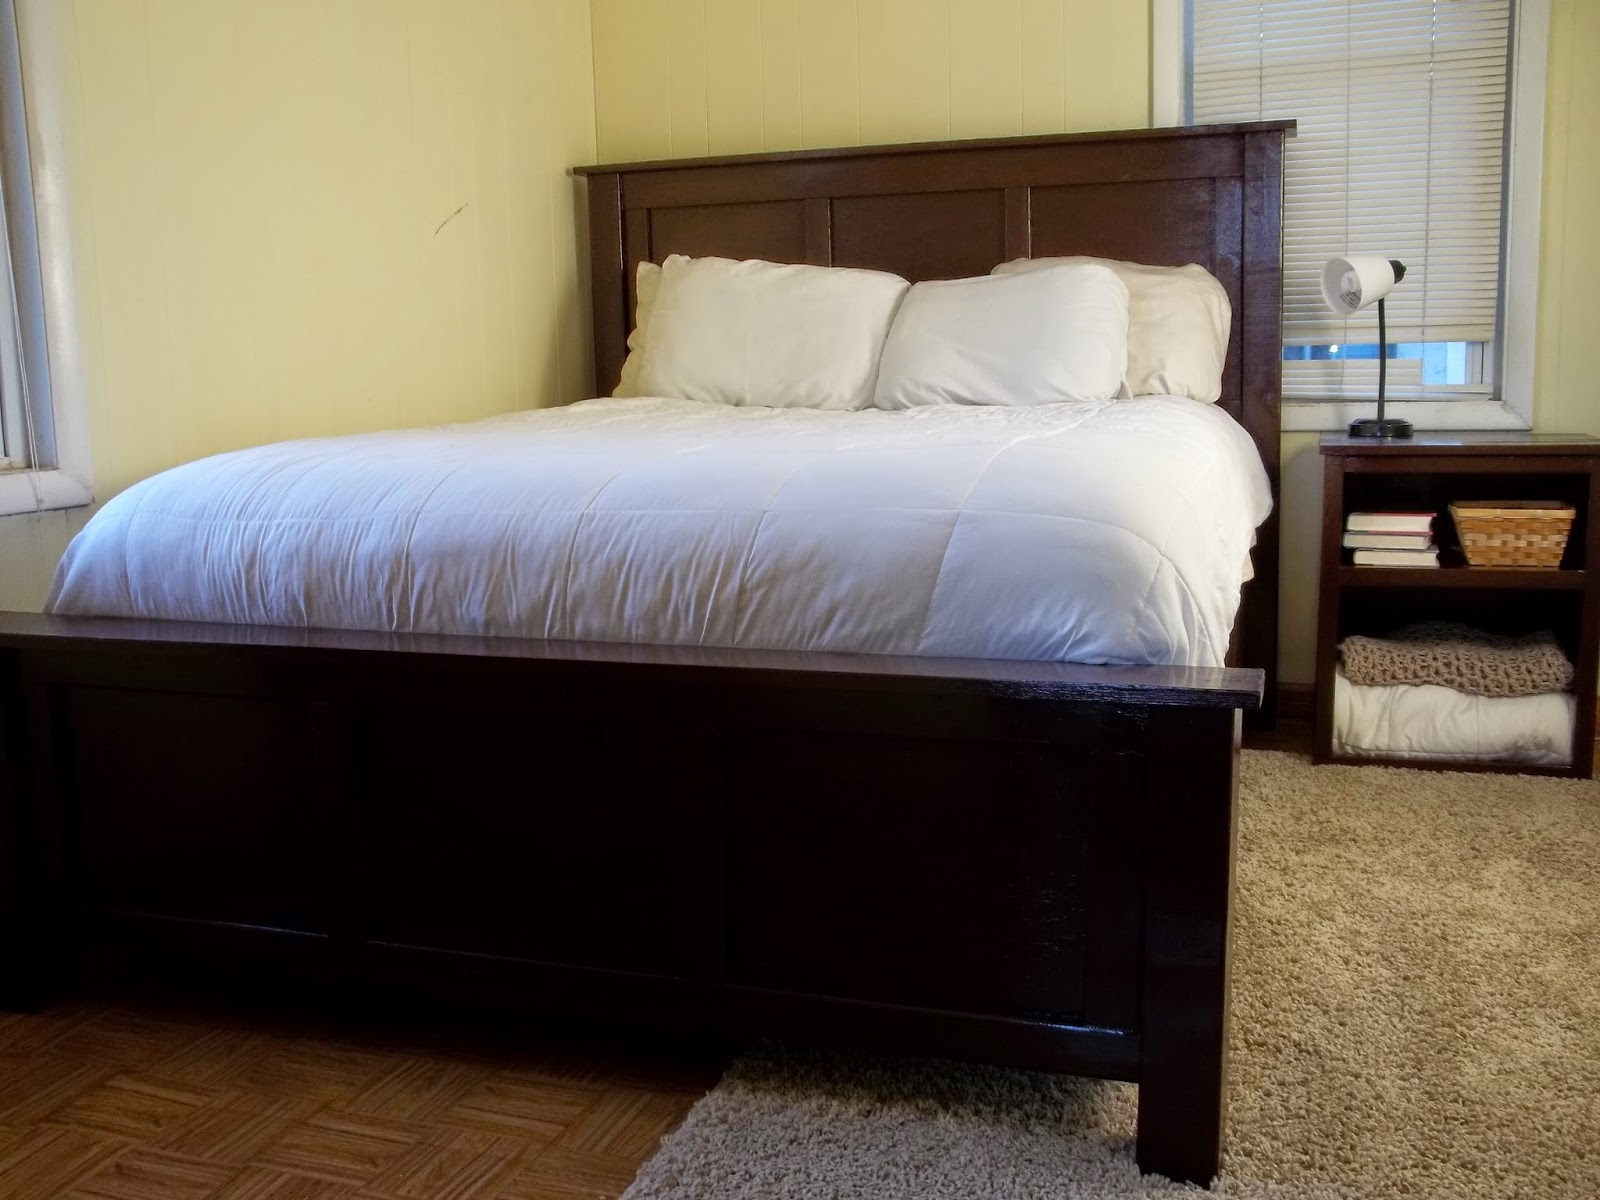 Jaime Of All Trades DIY Pottery Barn Inspired Hudson Queen Sized Bed